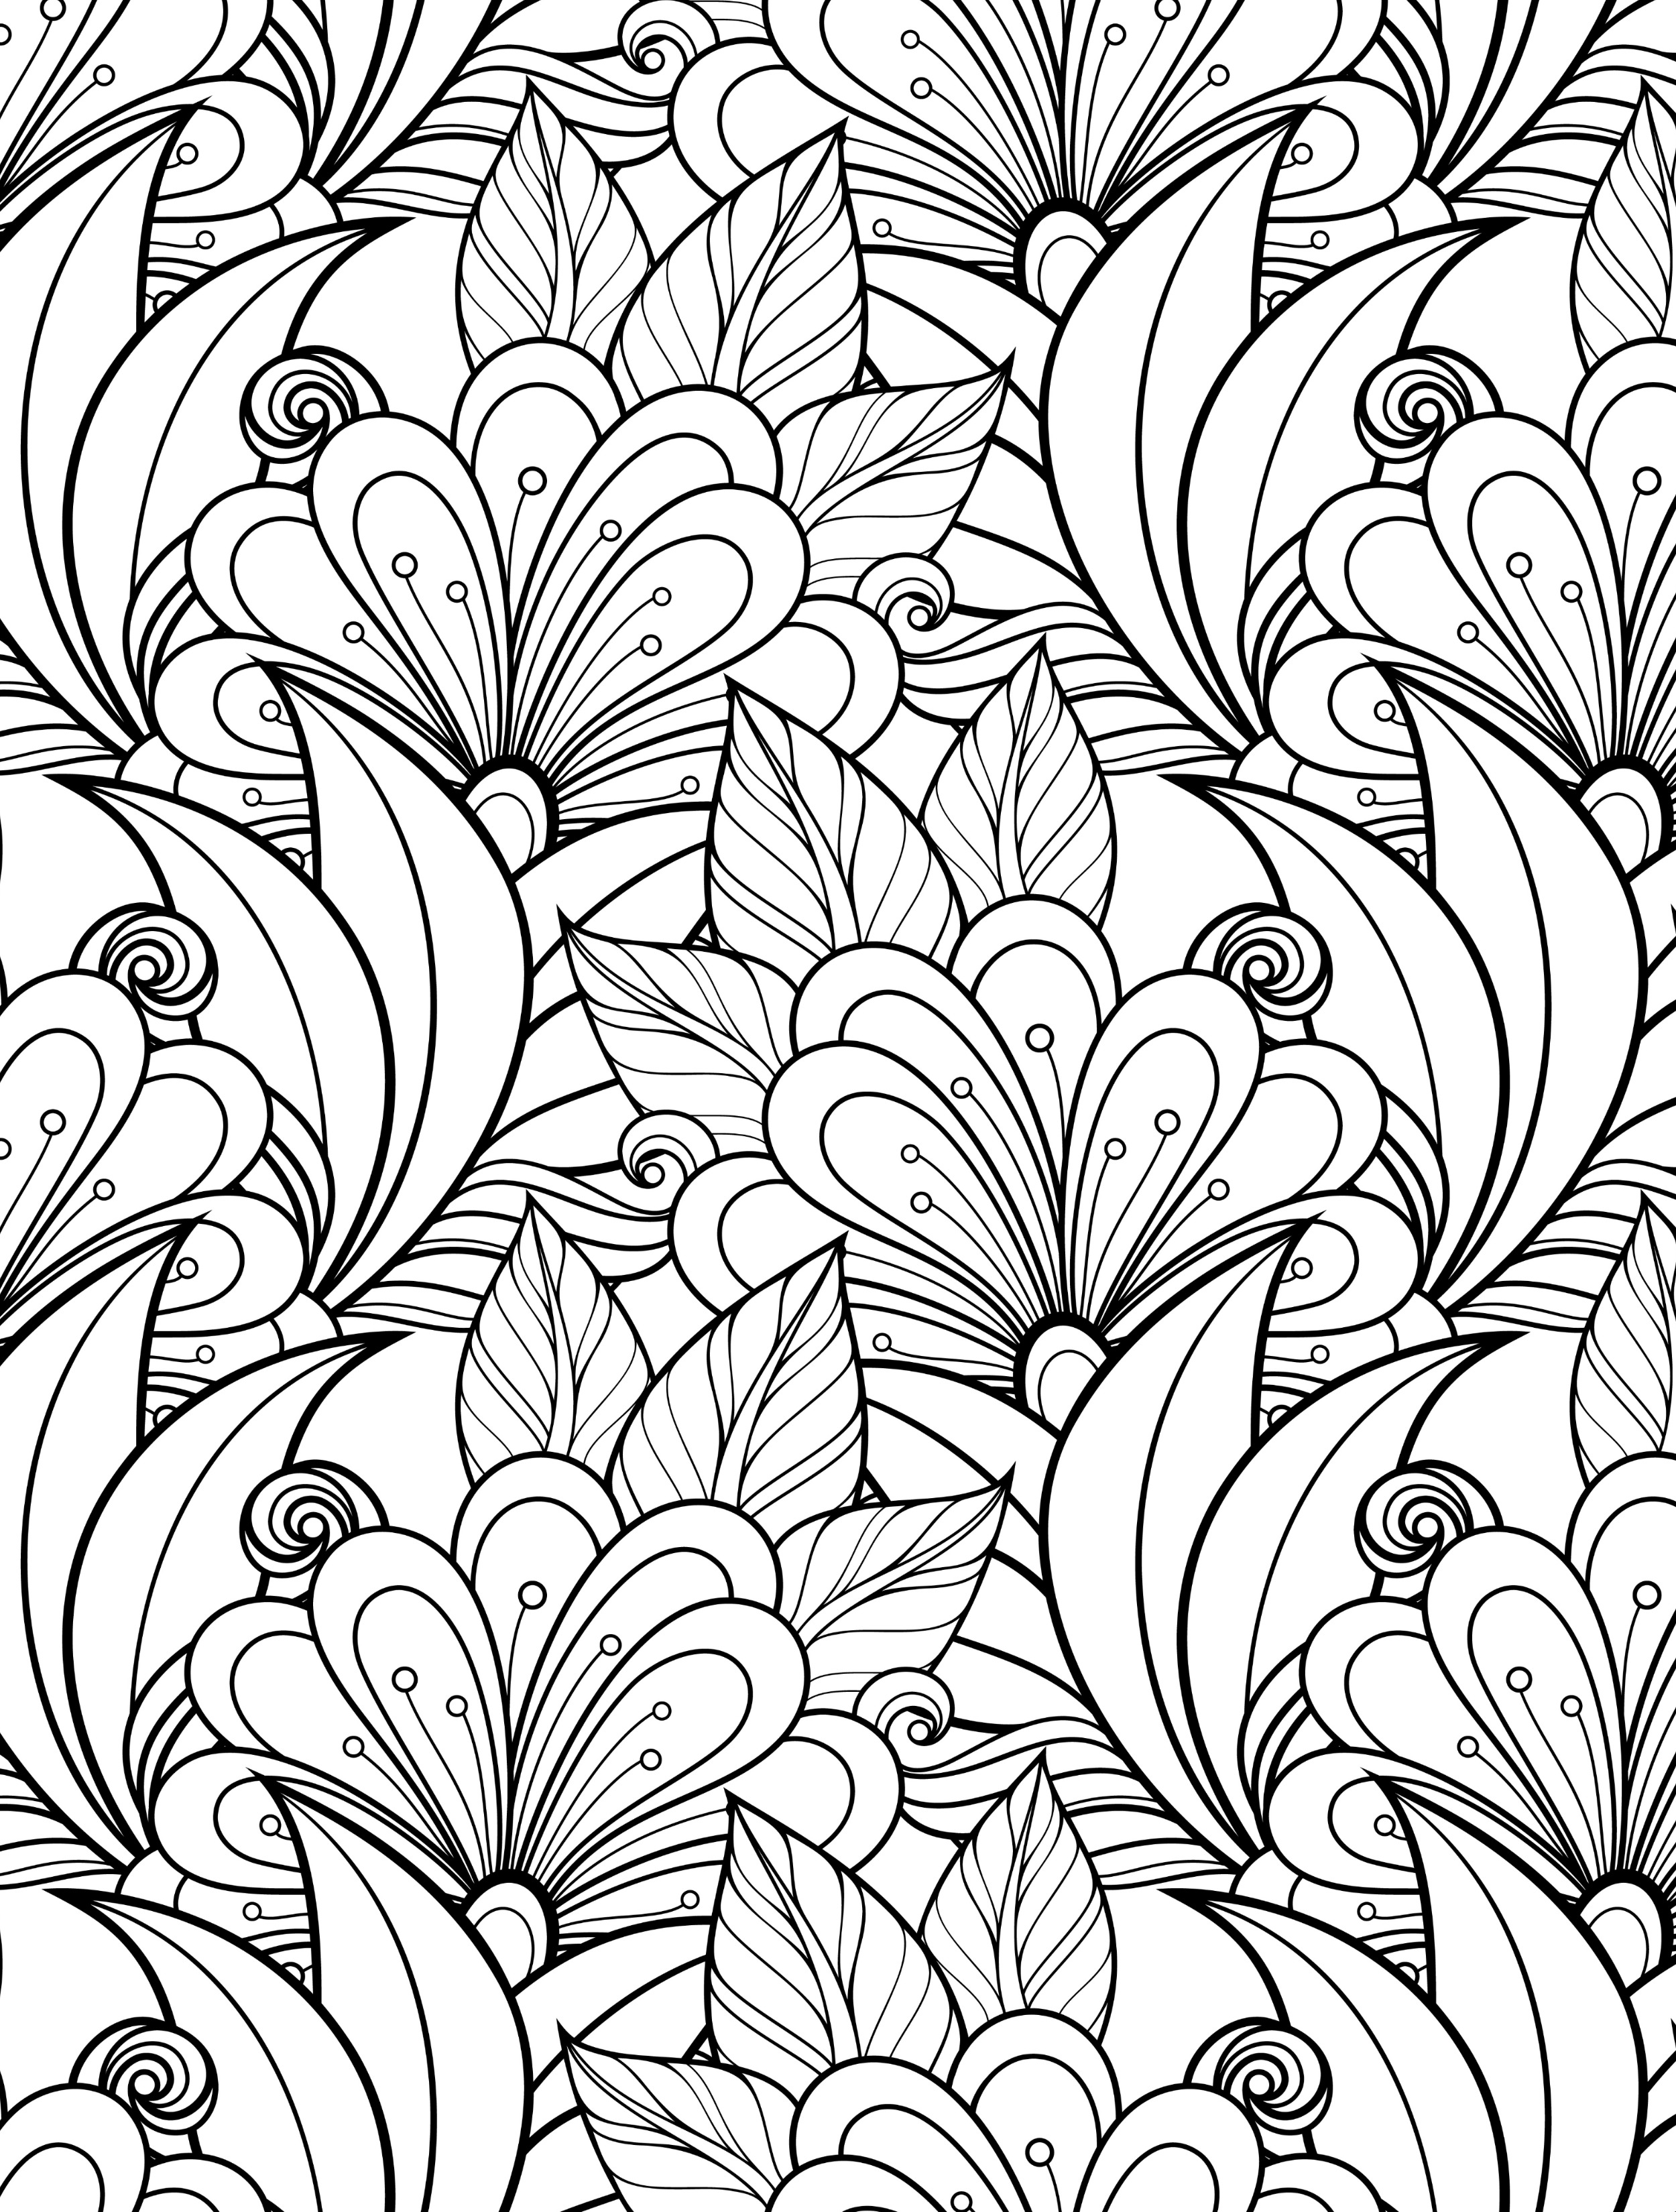 free coloring pages for adults printable free printable mushroom adult coloring page coloring for adults pages printable free